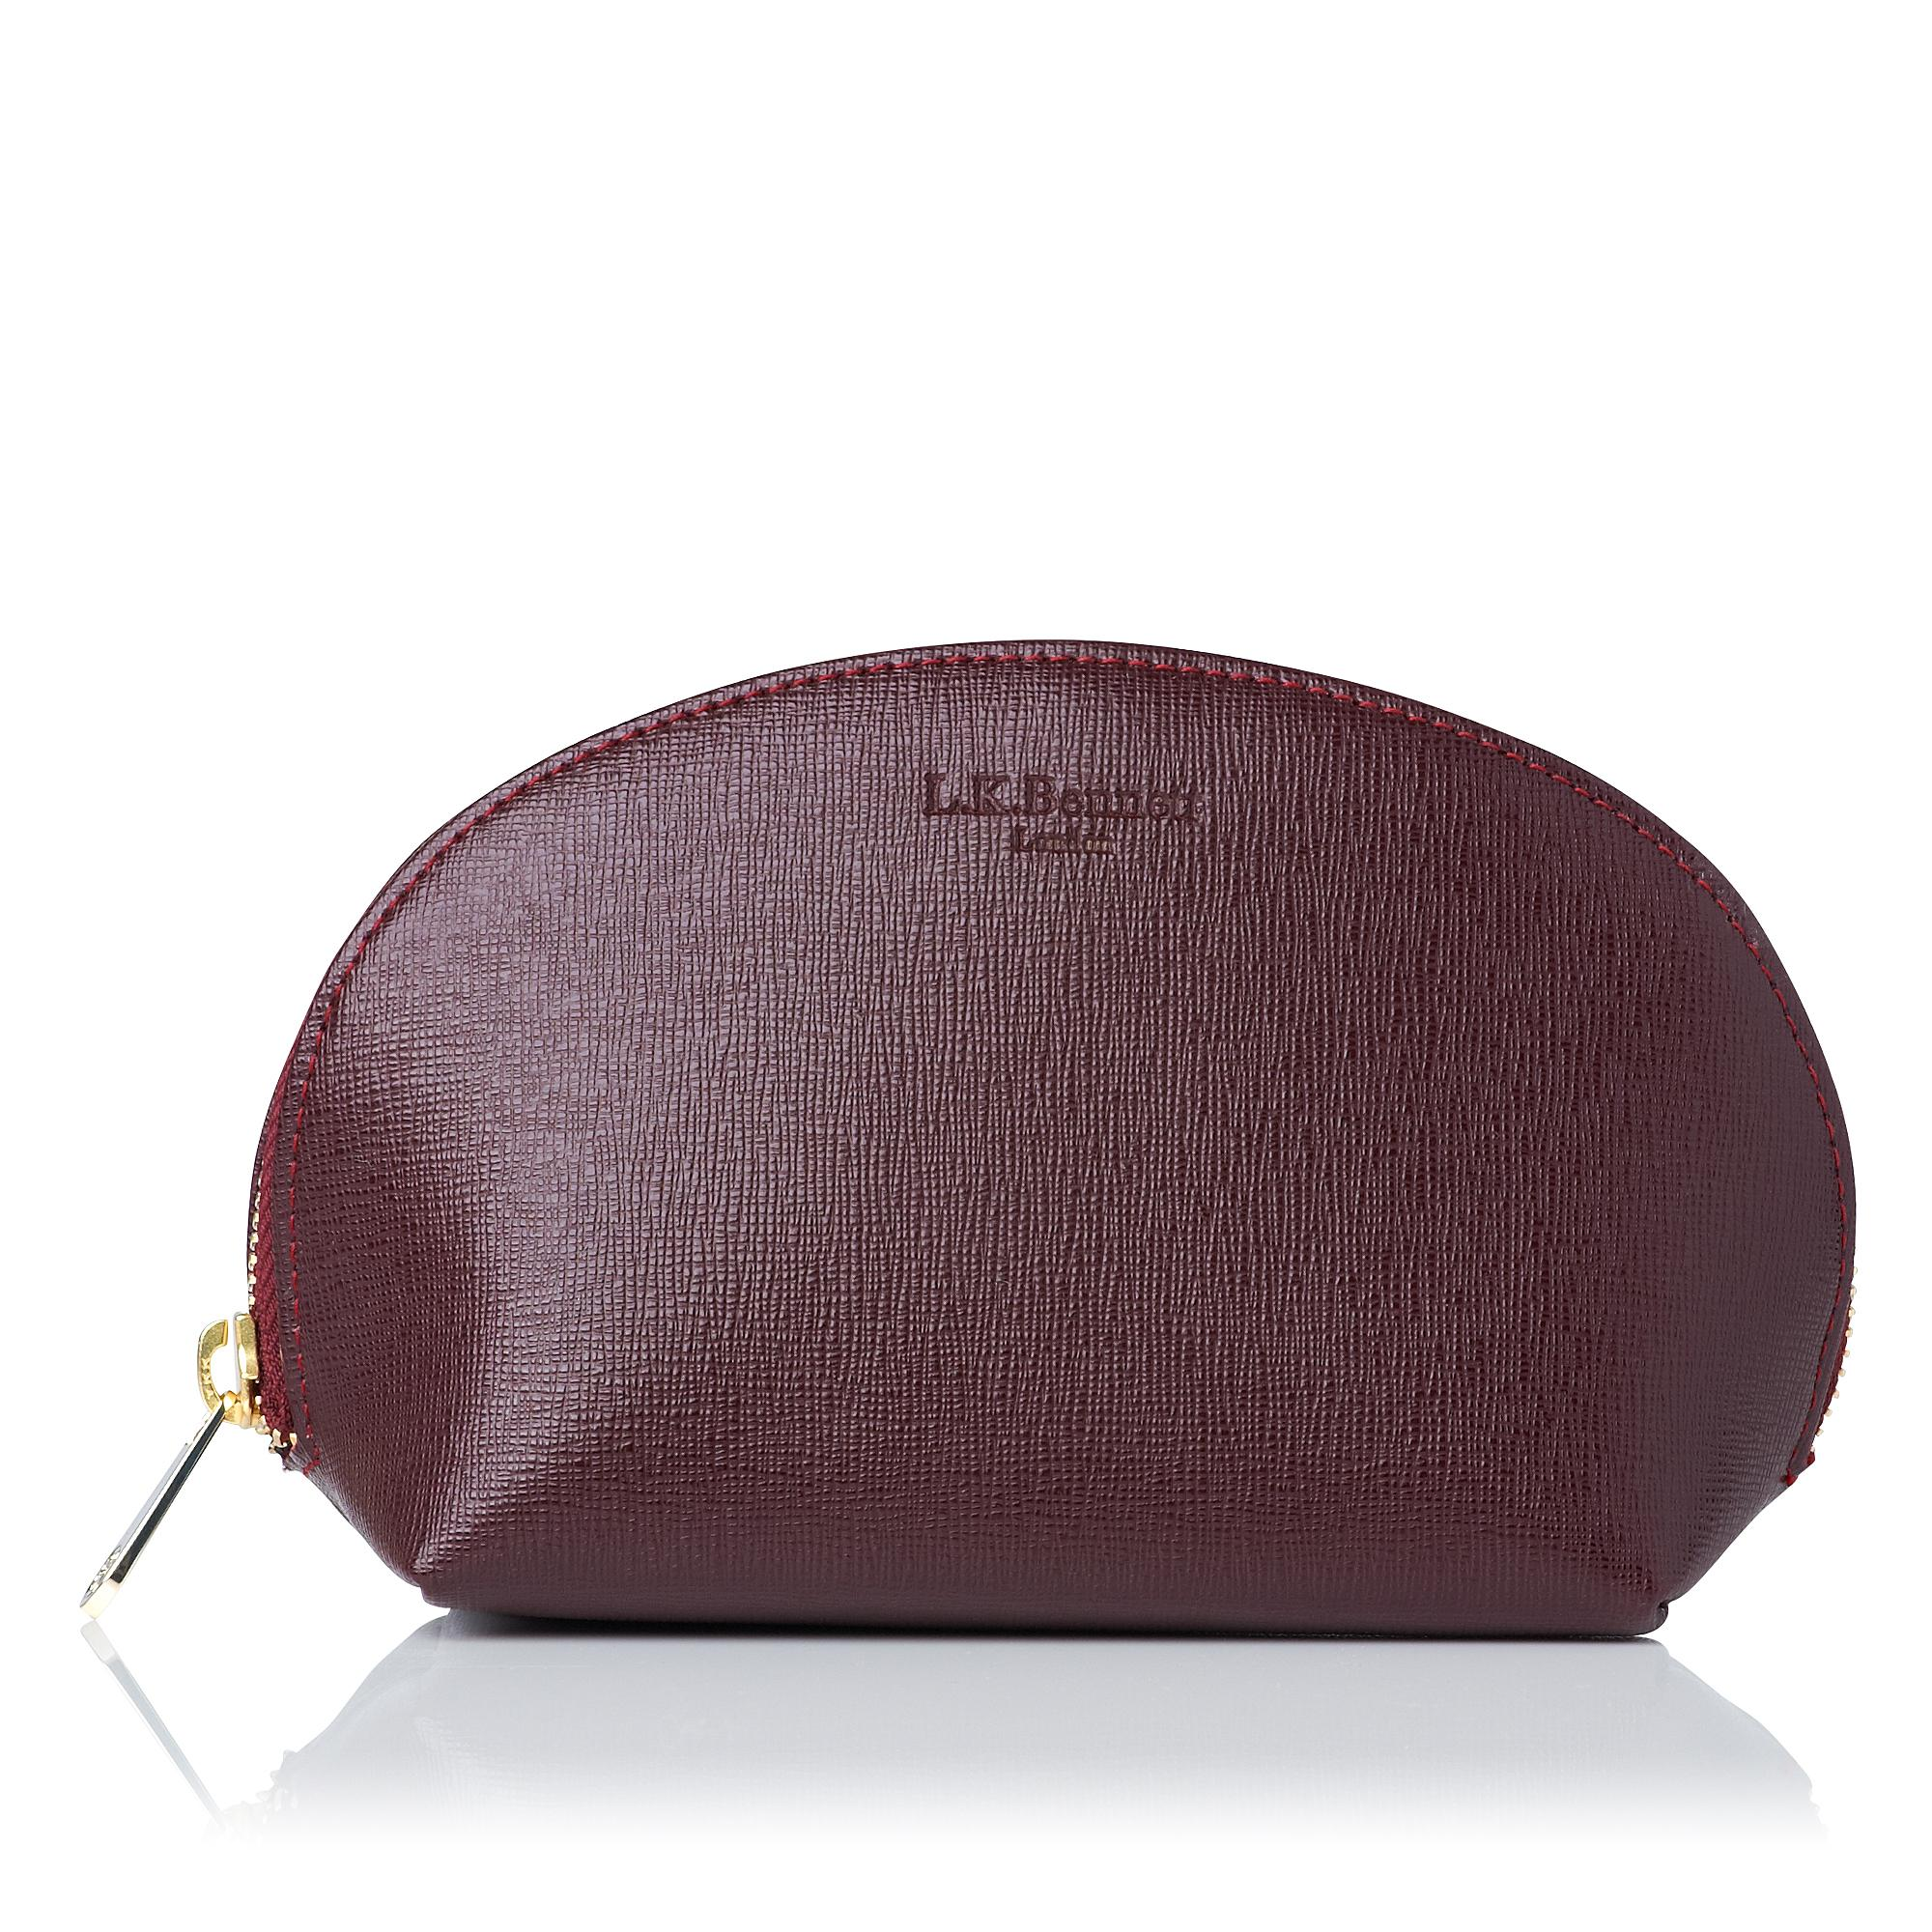 56638f8a4f ... top quality ocosma mulberry leather cosmetic bag l.k.bennett london  fc6e4 a434a